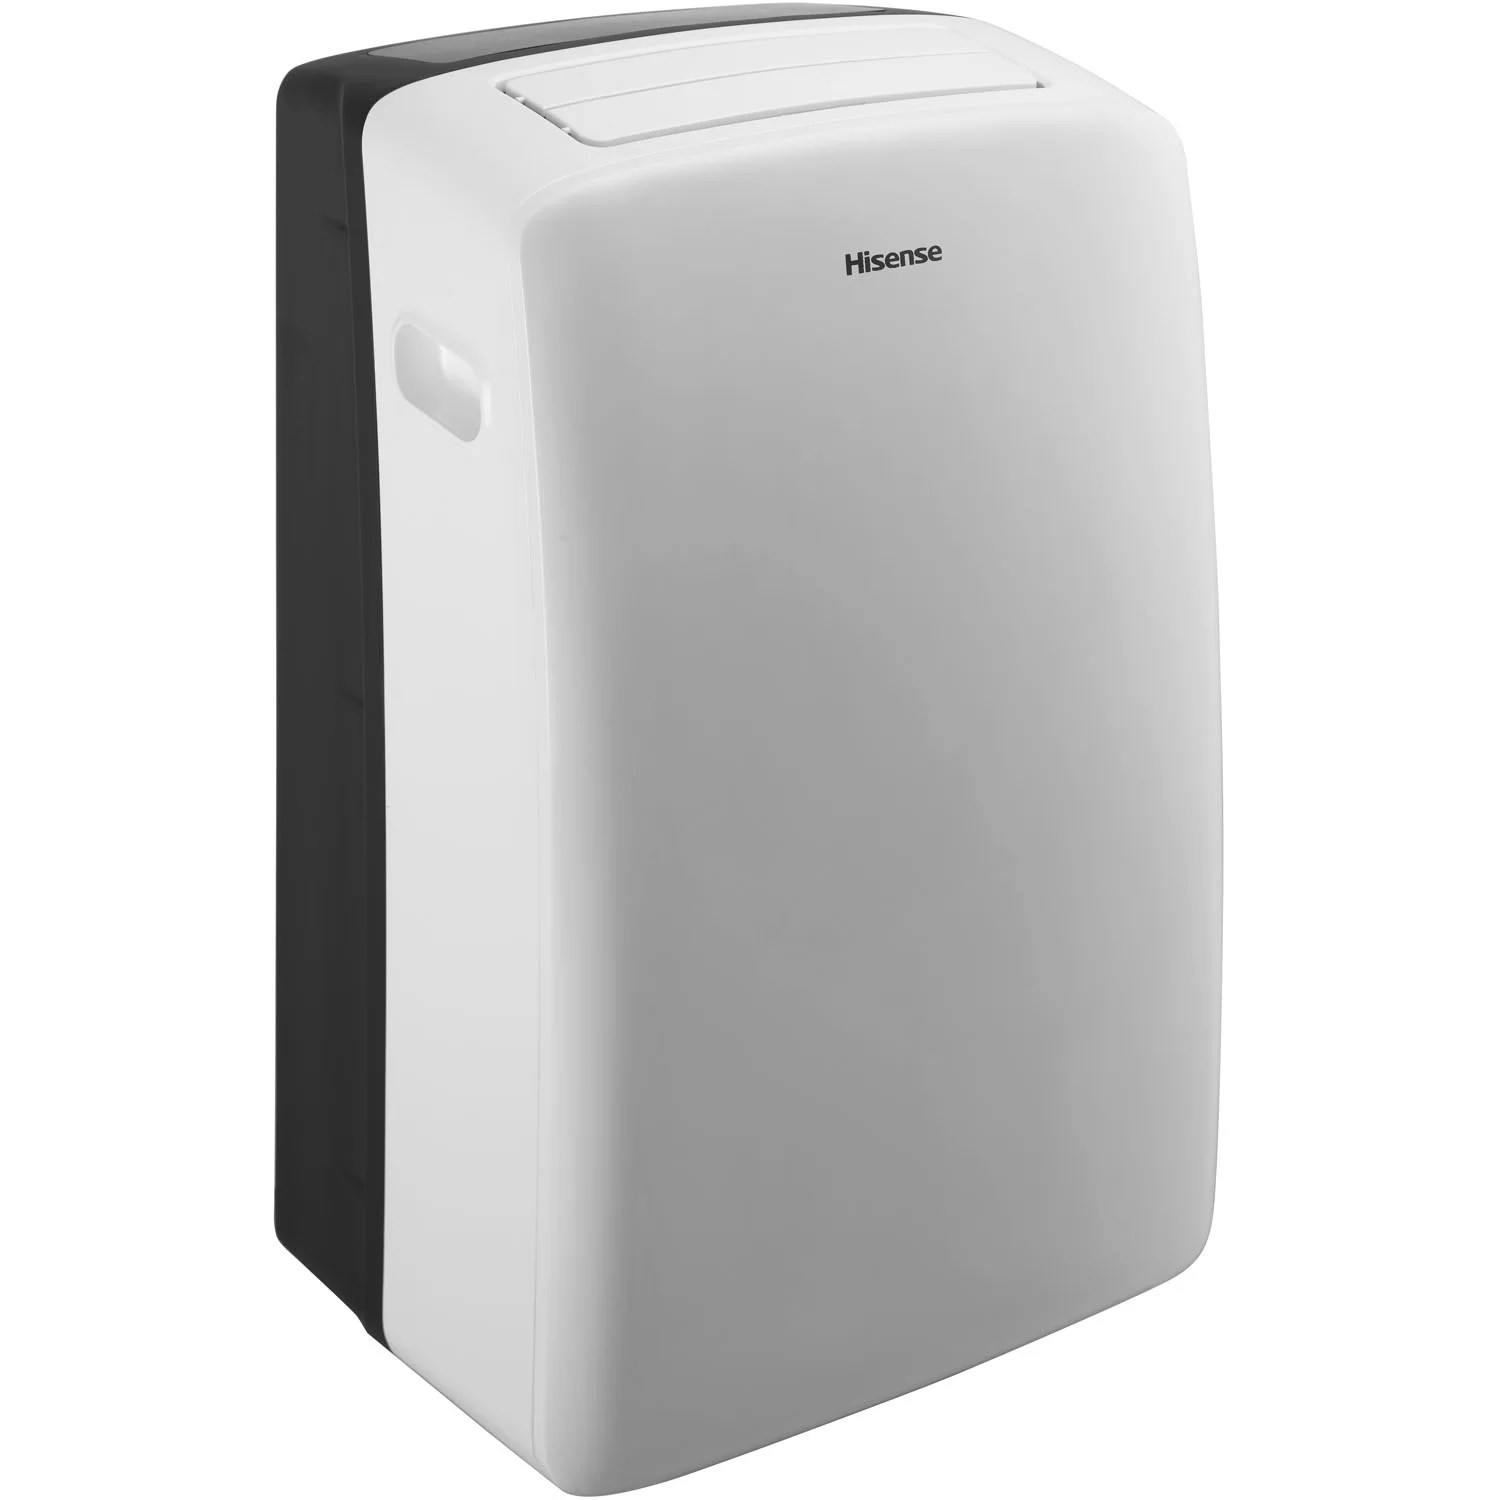 Portable Air Conditioner 12000 Btu Hisense 12000 Btu Portable Air Conditioner With Remote